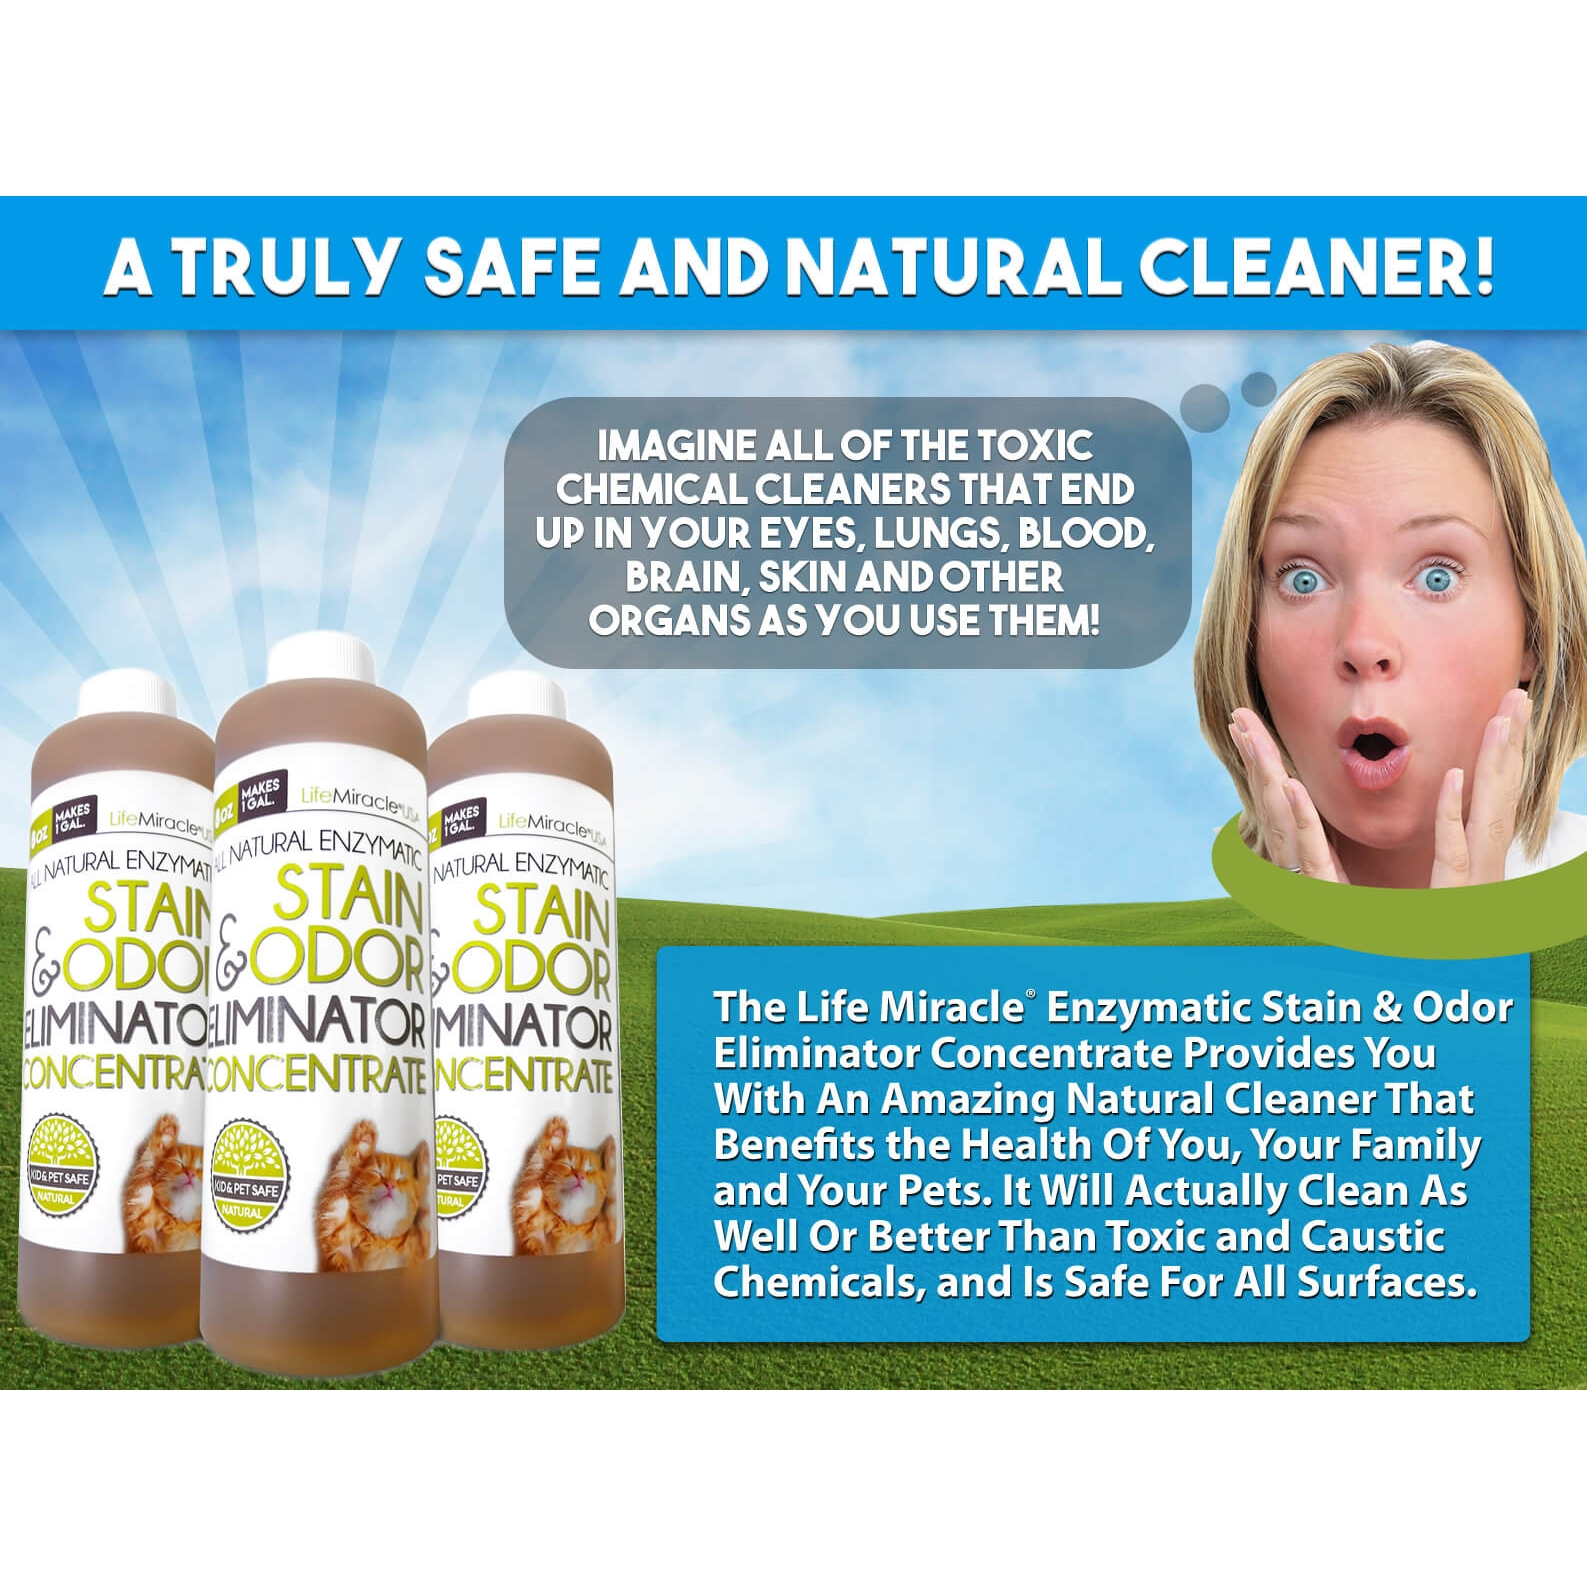 Life Miracle Natural Enzyme Cleaner Life Miracle Health